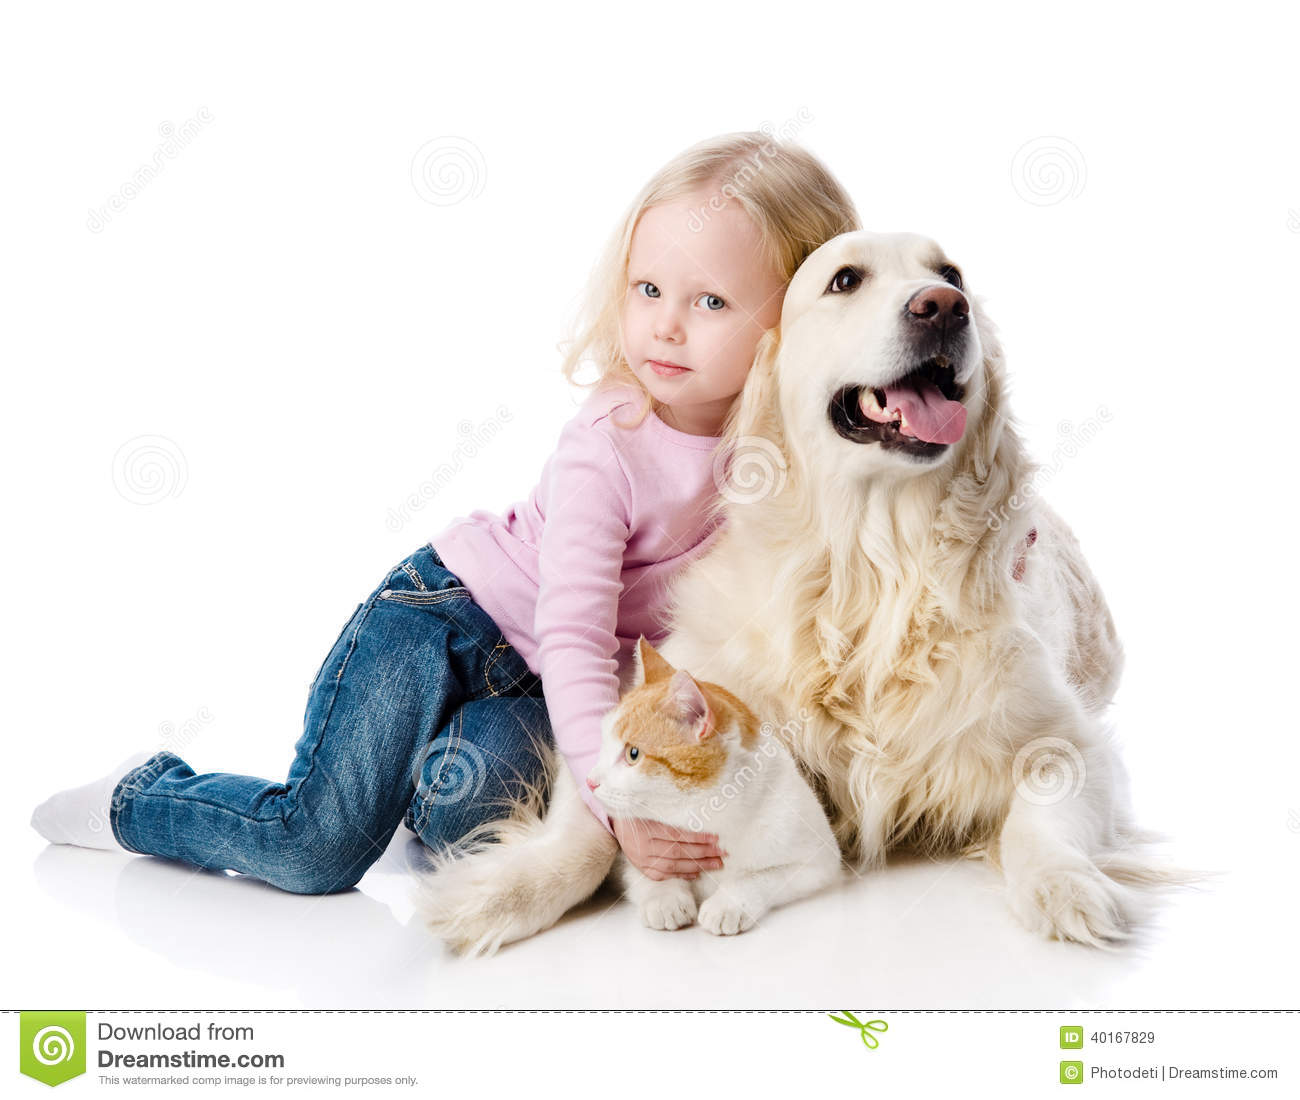 Download Girl Playing With Pets - Dog And Cat. Stock Image - Image of girl, golden: 40167829